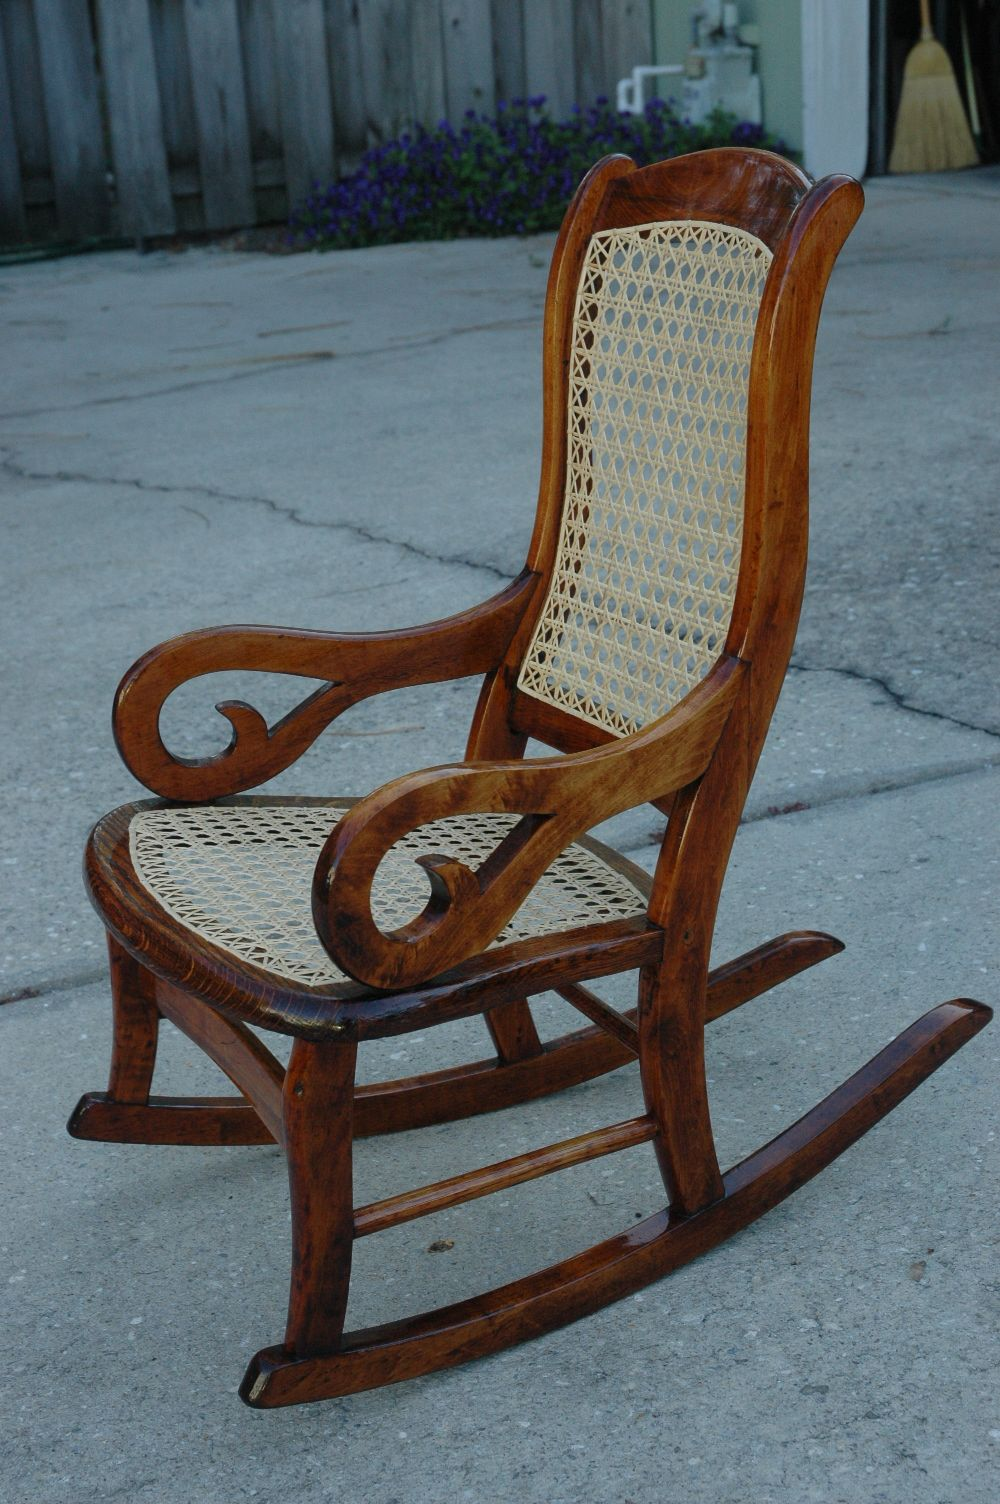 Mennonite Furniture Kitchener Antique Rocking Chair Classic 1800s Abraham Lincoln Style